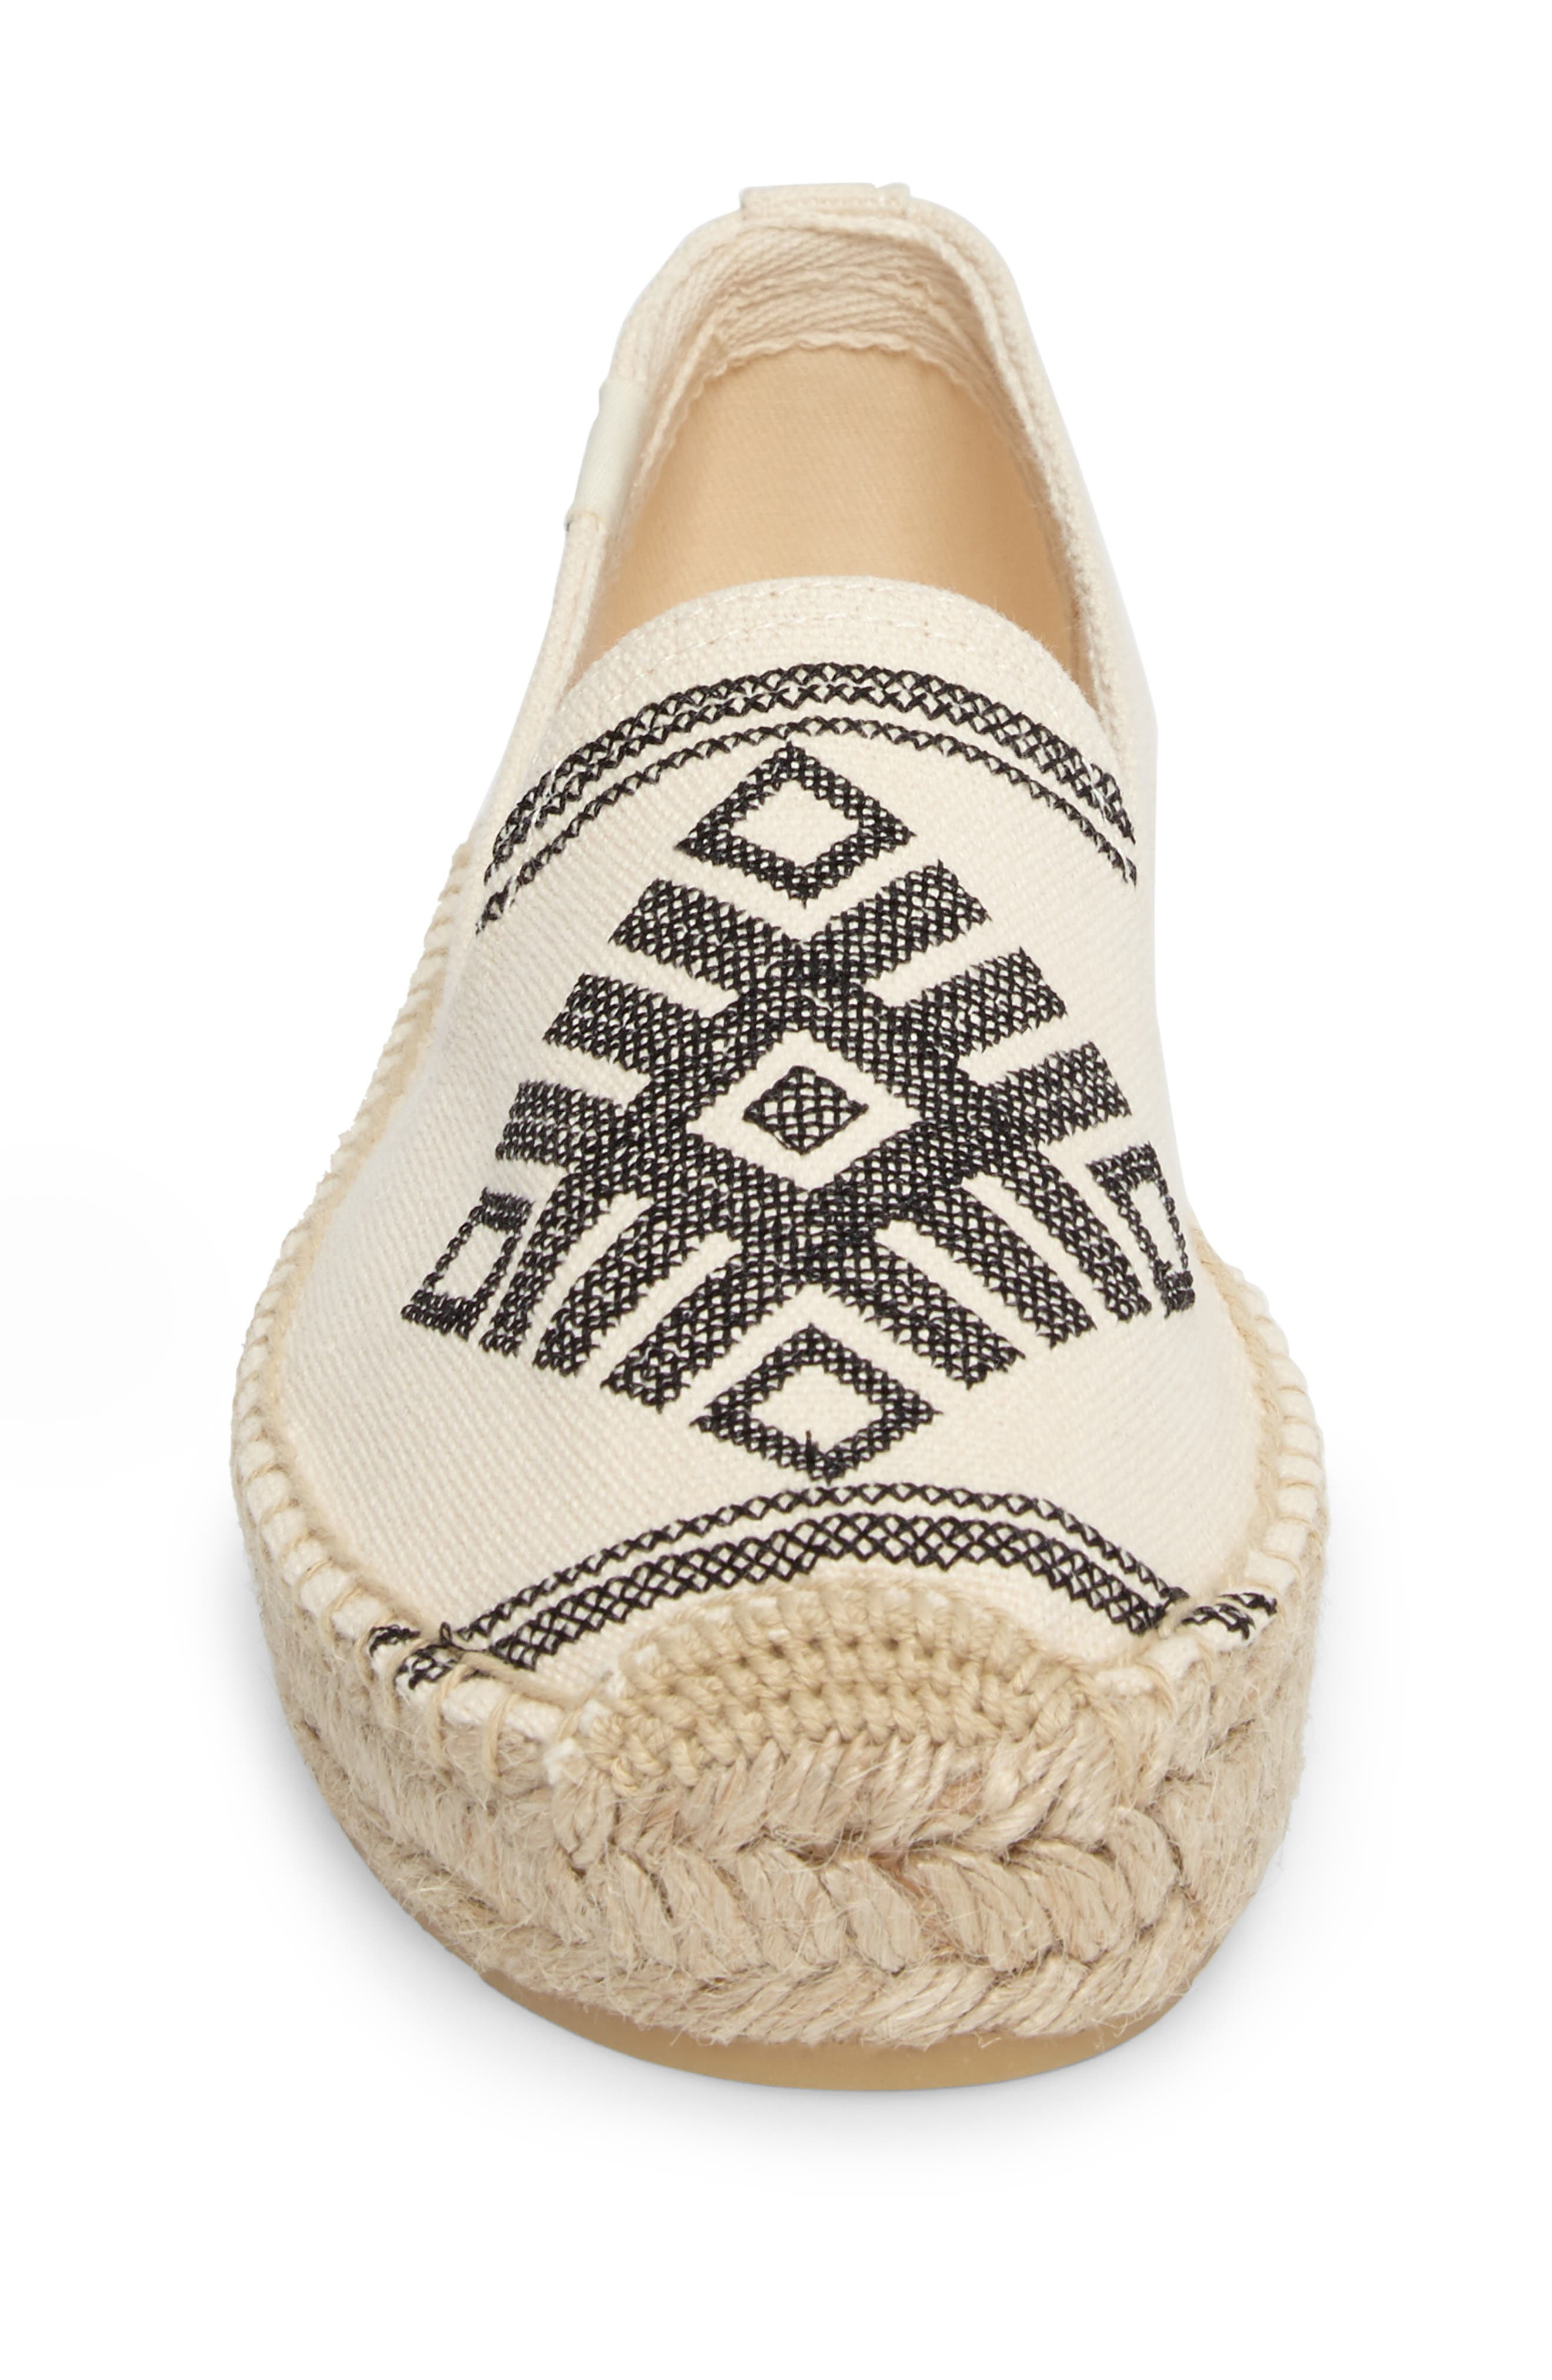 Yucatan Smoking Slipper,                             Alternate thumbnail 4, color,                             Natural Canvas